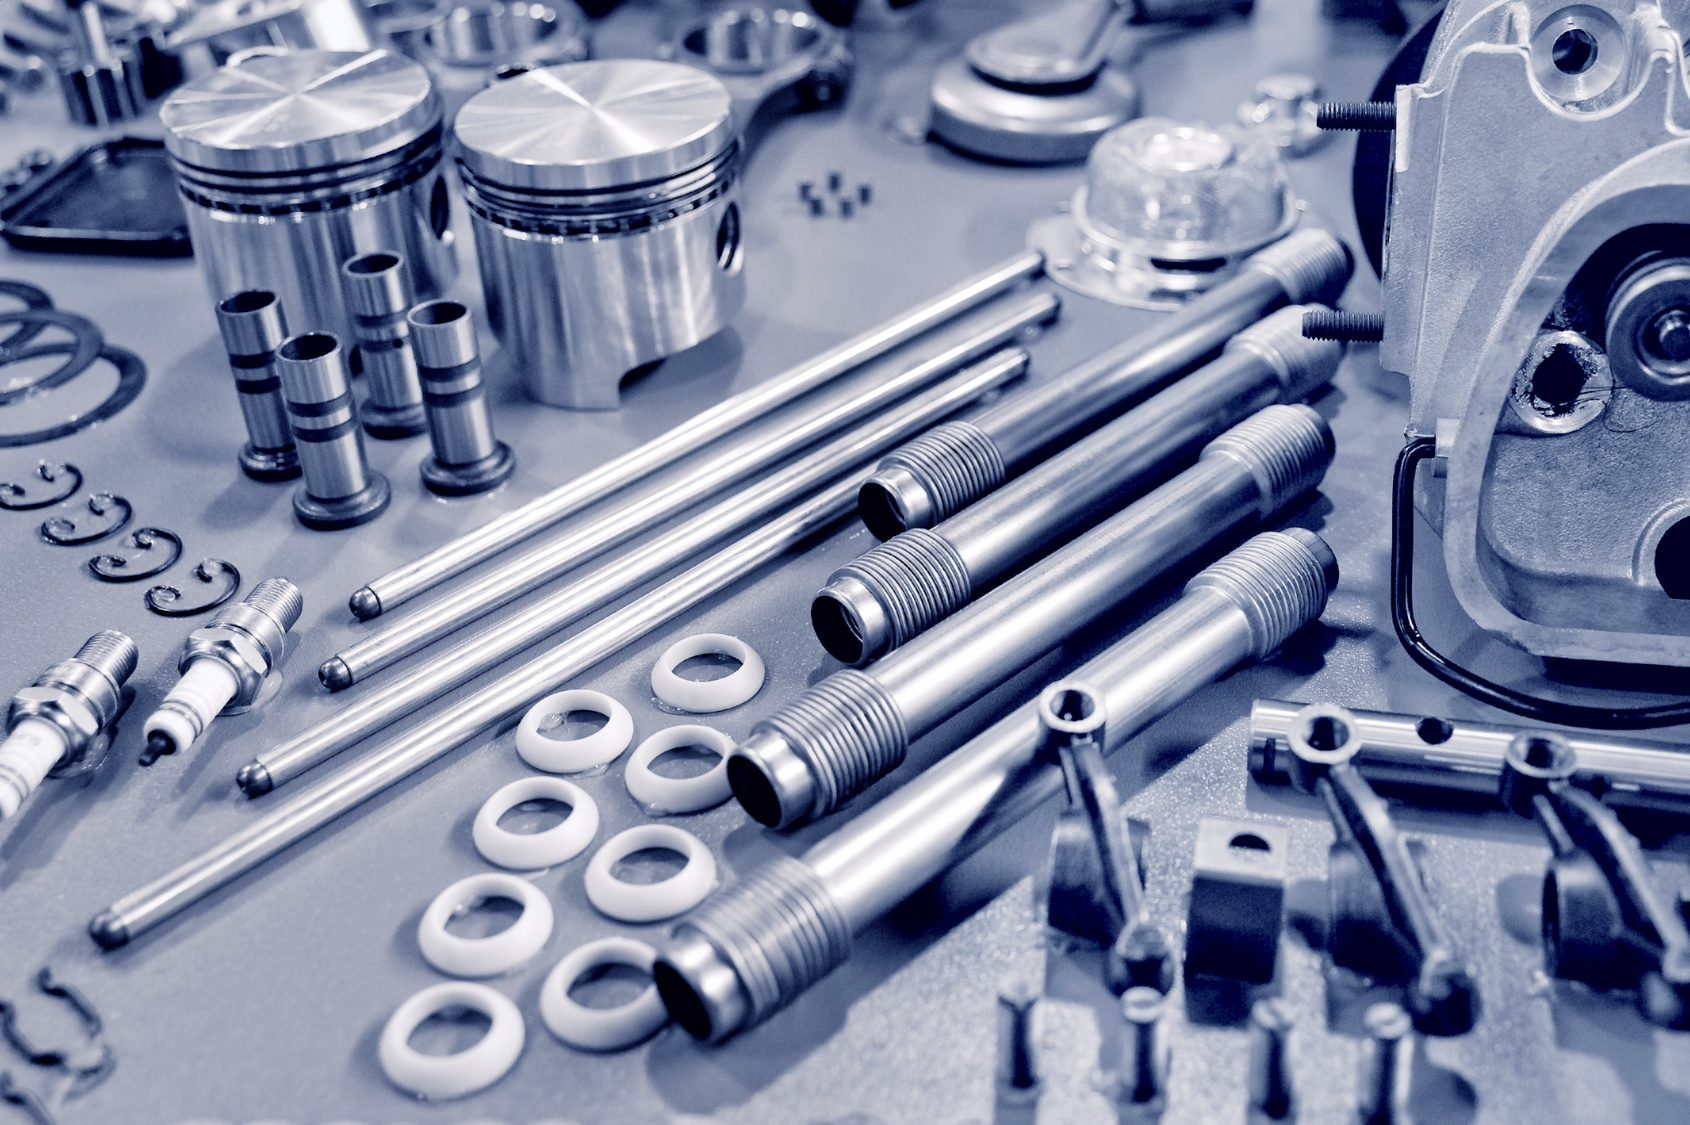 Locomotive Spare Parts : Spare parts for heavy duty trucks trailers and machinery